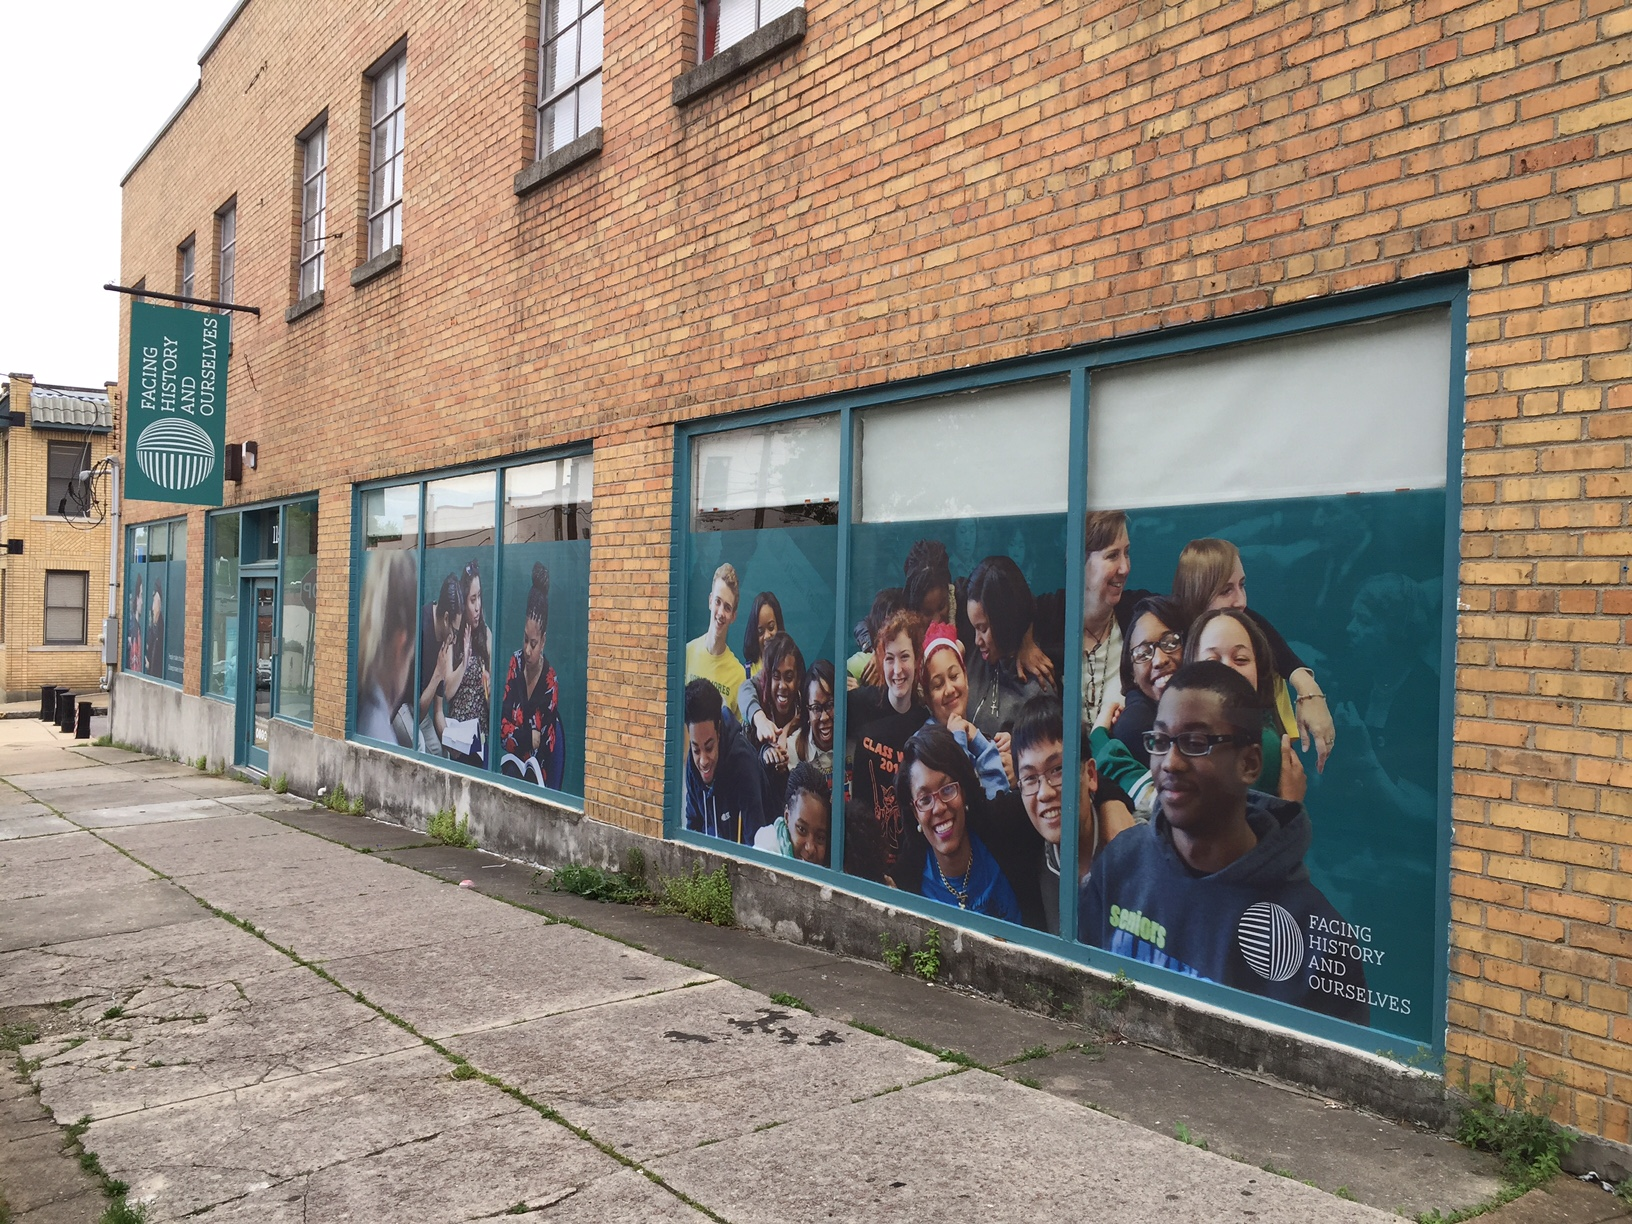 Facing History & Ourselves Window Graphics